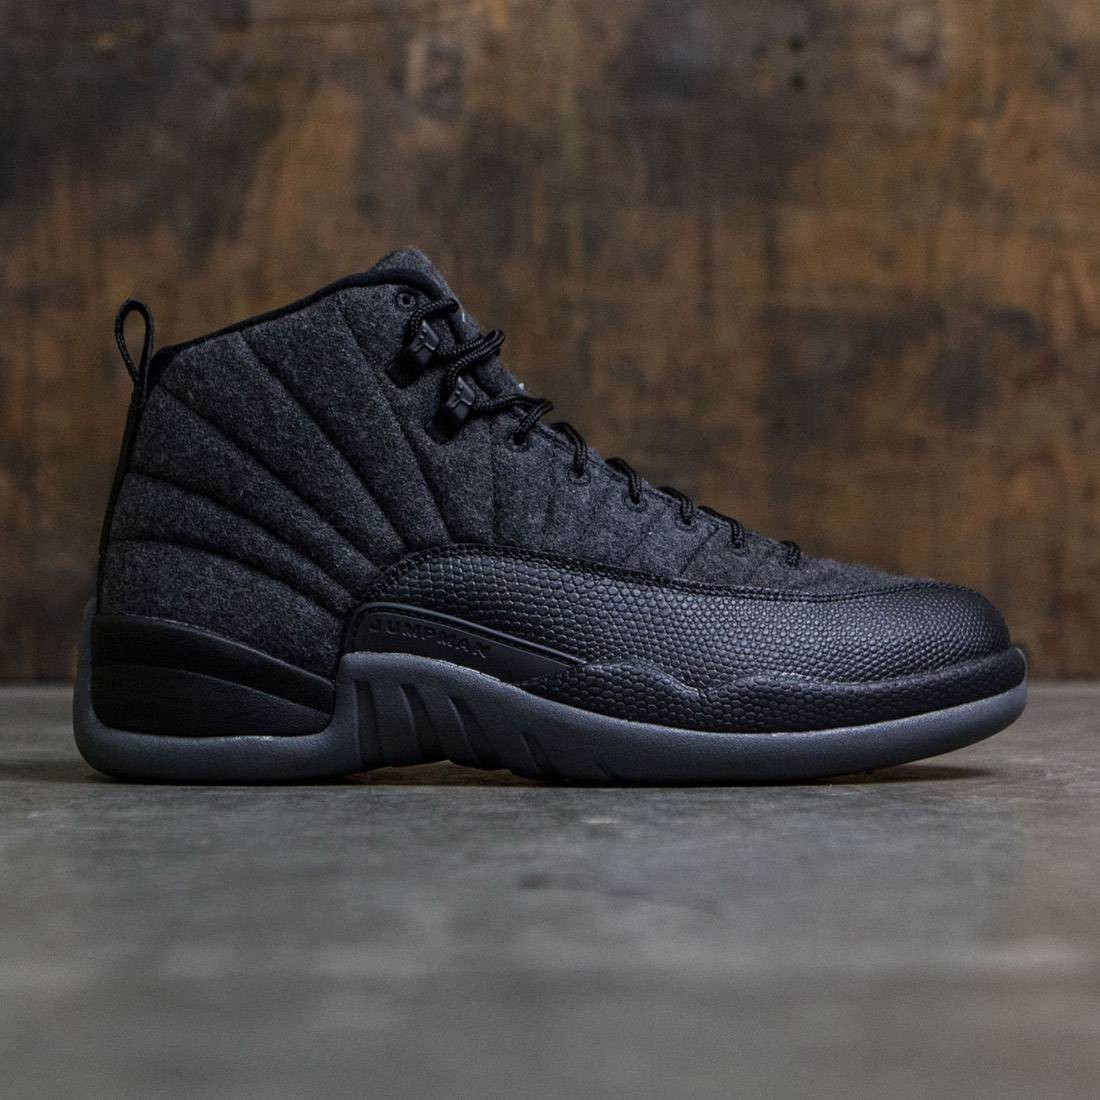 Air Jordan 12 Retro Wool Men (dark grey / metallic silver-black)